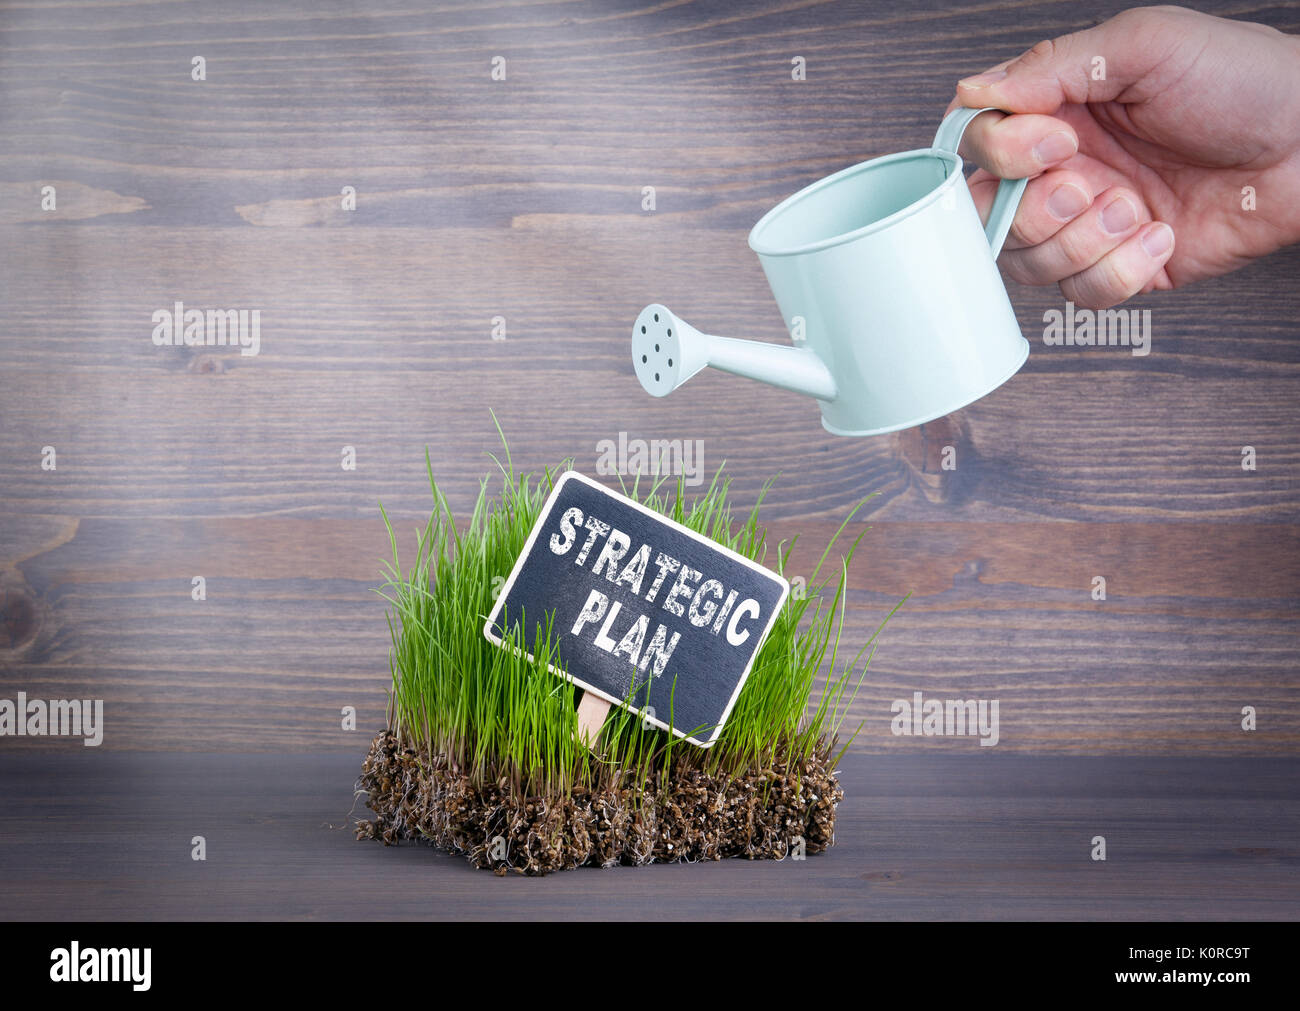 Strategic Plan concept. Fresh and green grass on wood background. - Stock Image